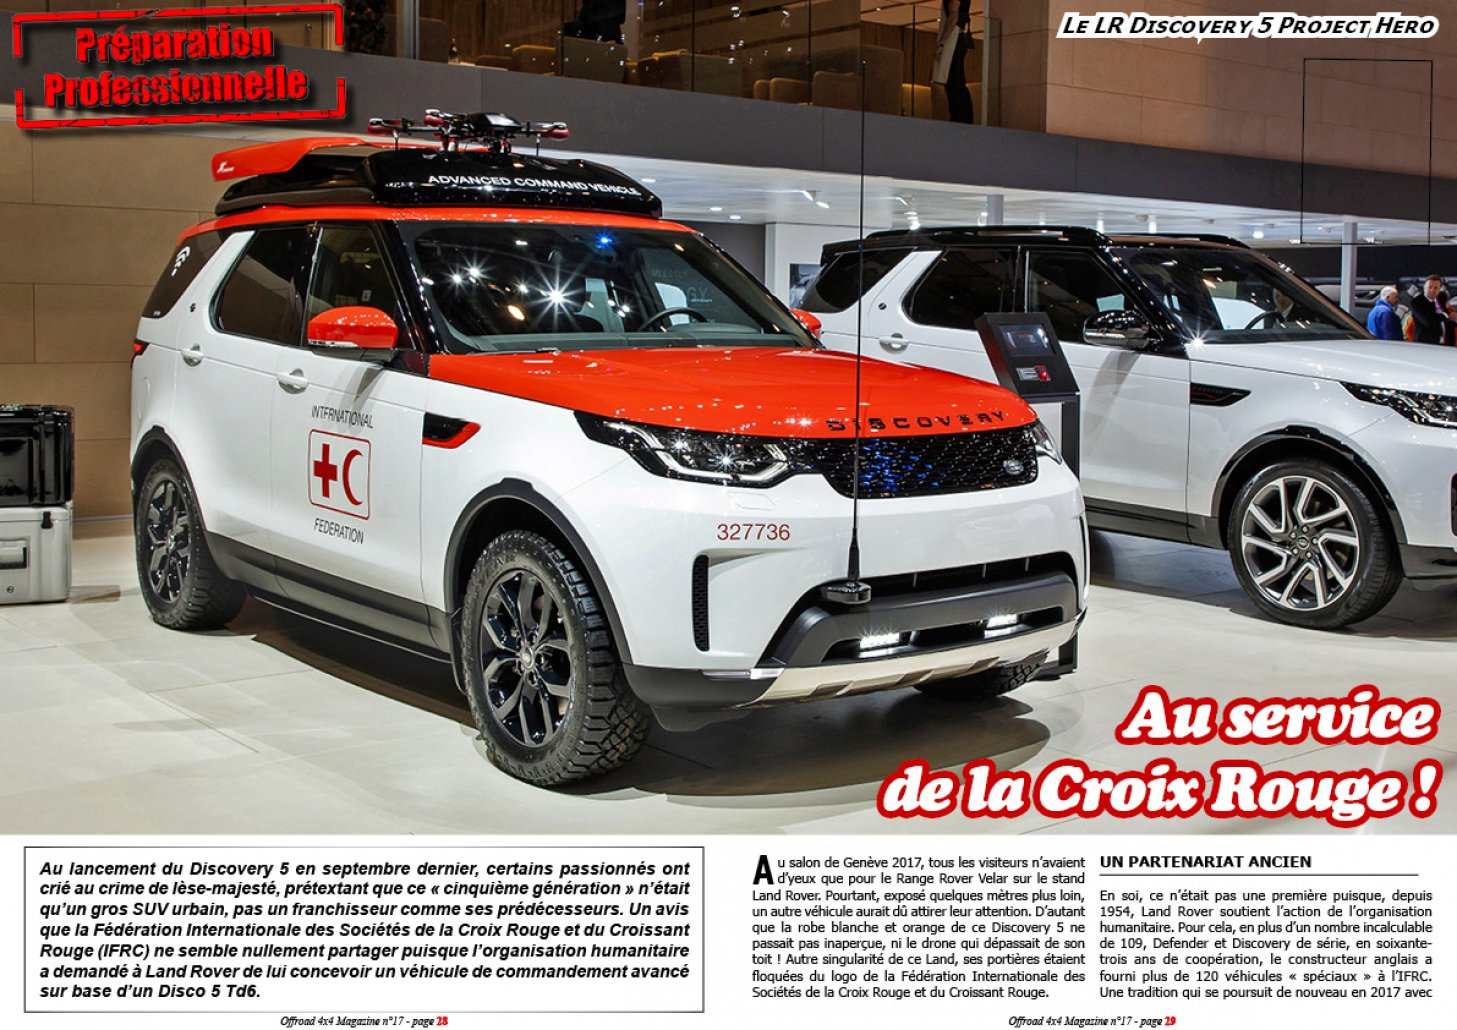 Le Land Rover Discovery 5 Project Hero